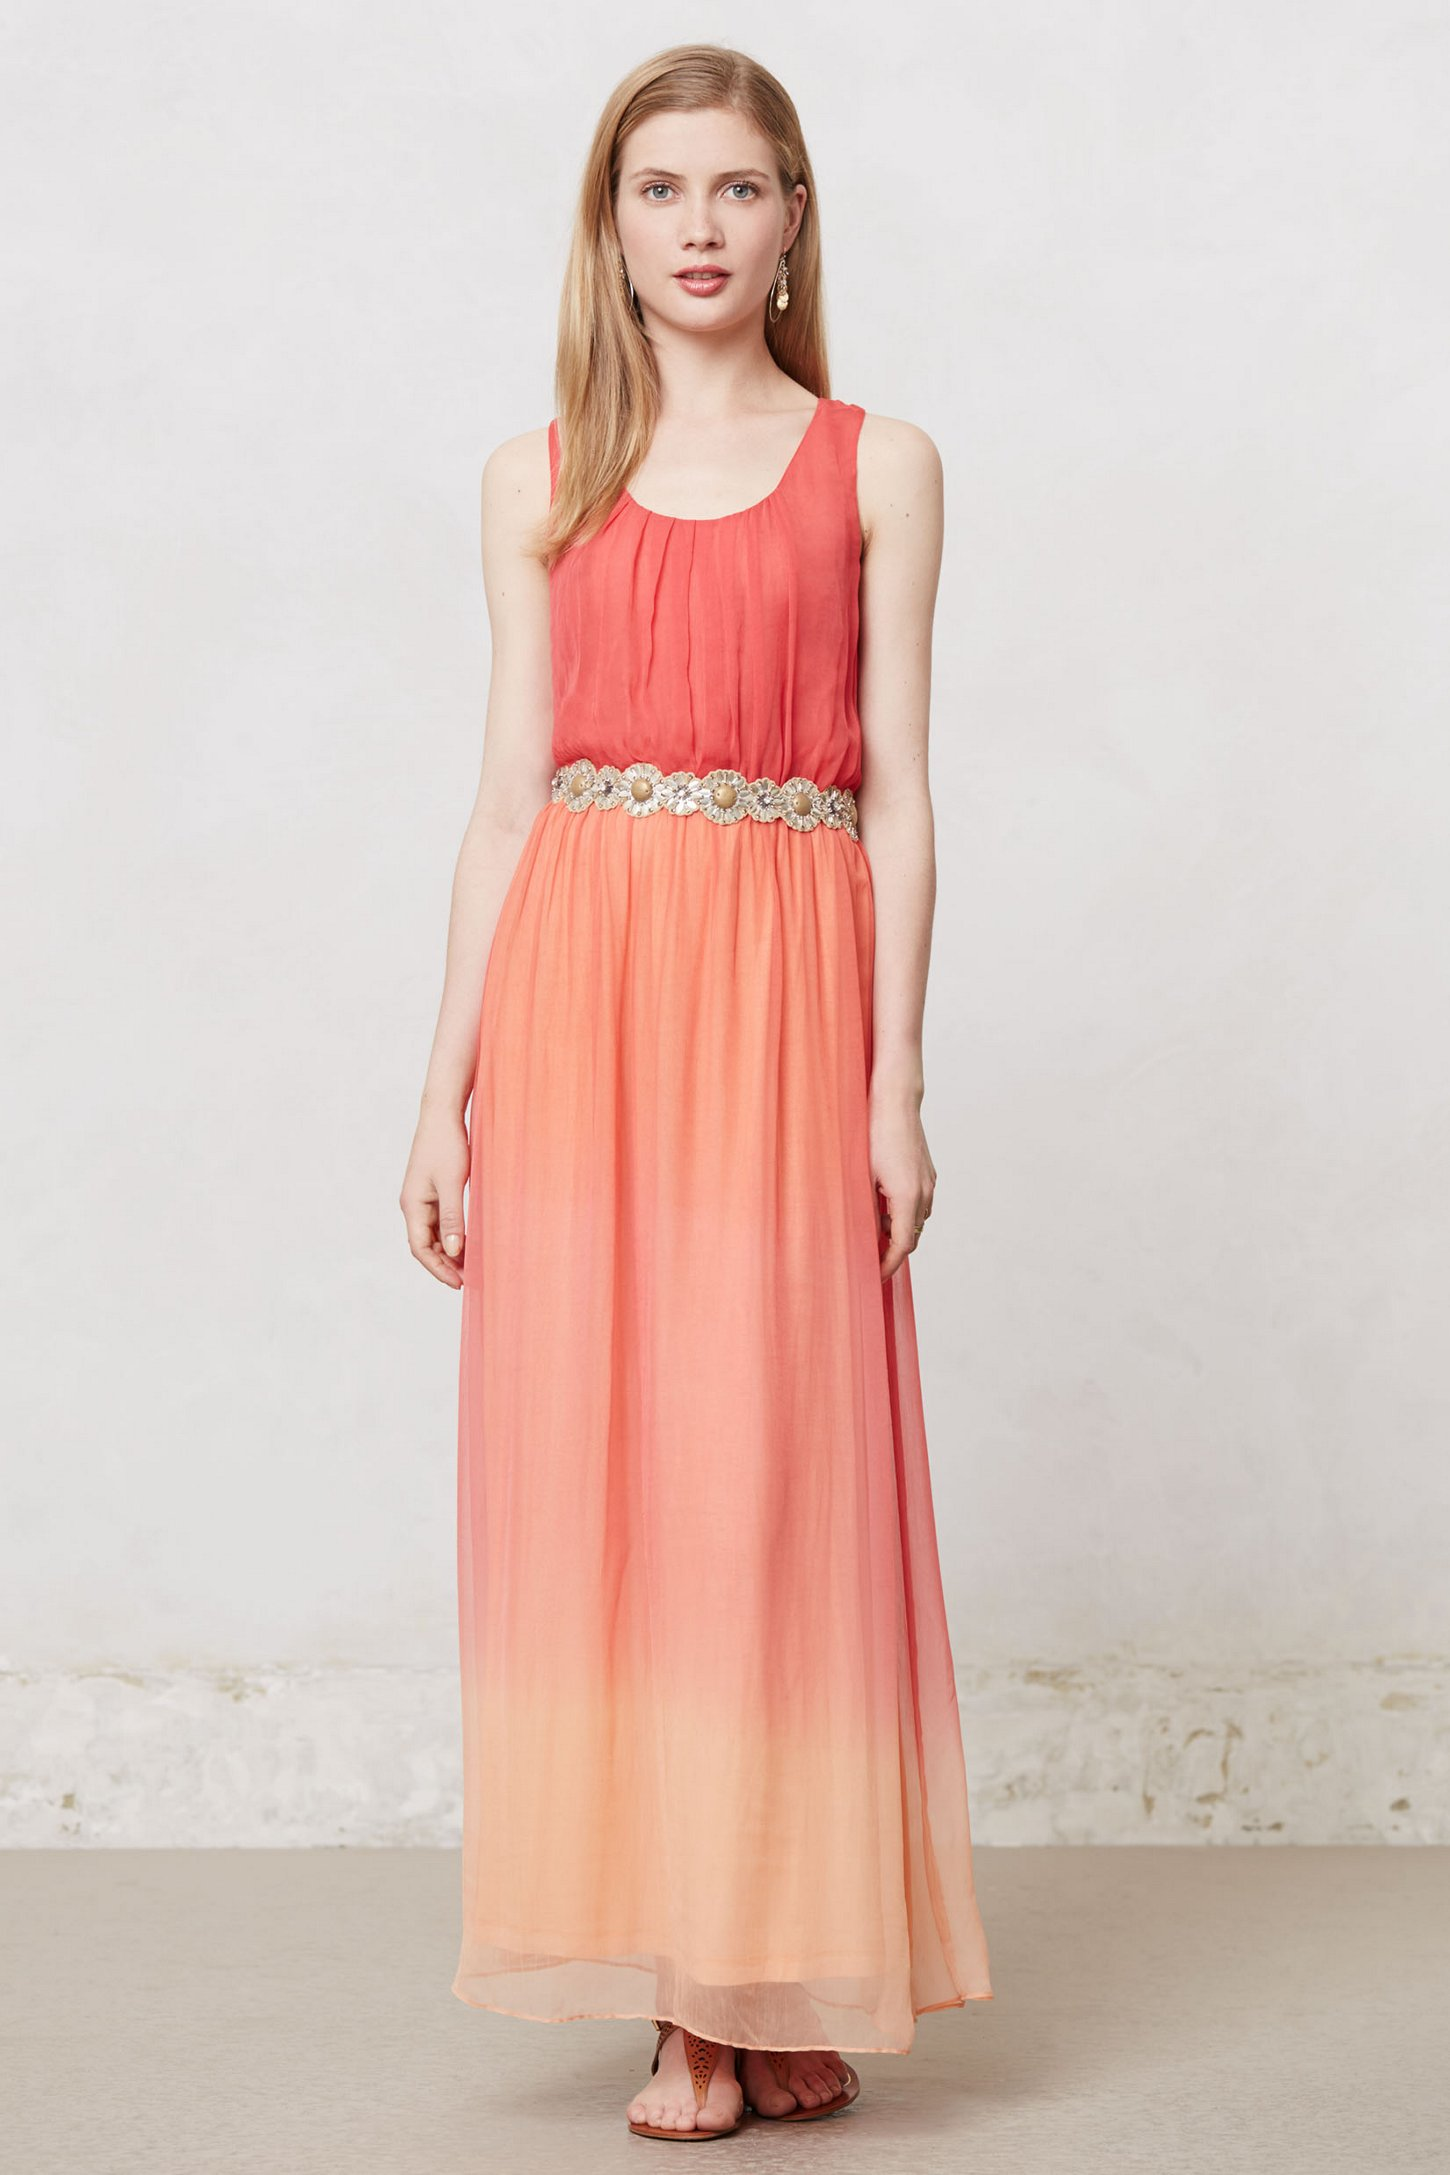 Looking for something thats uniquely you? Get inspired by ModCloths adorable array of Maxi today!